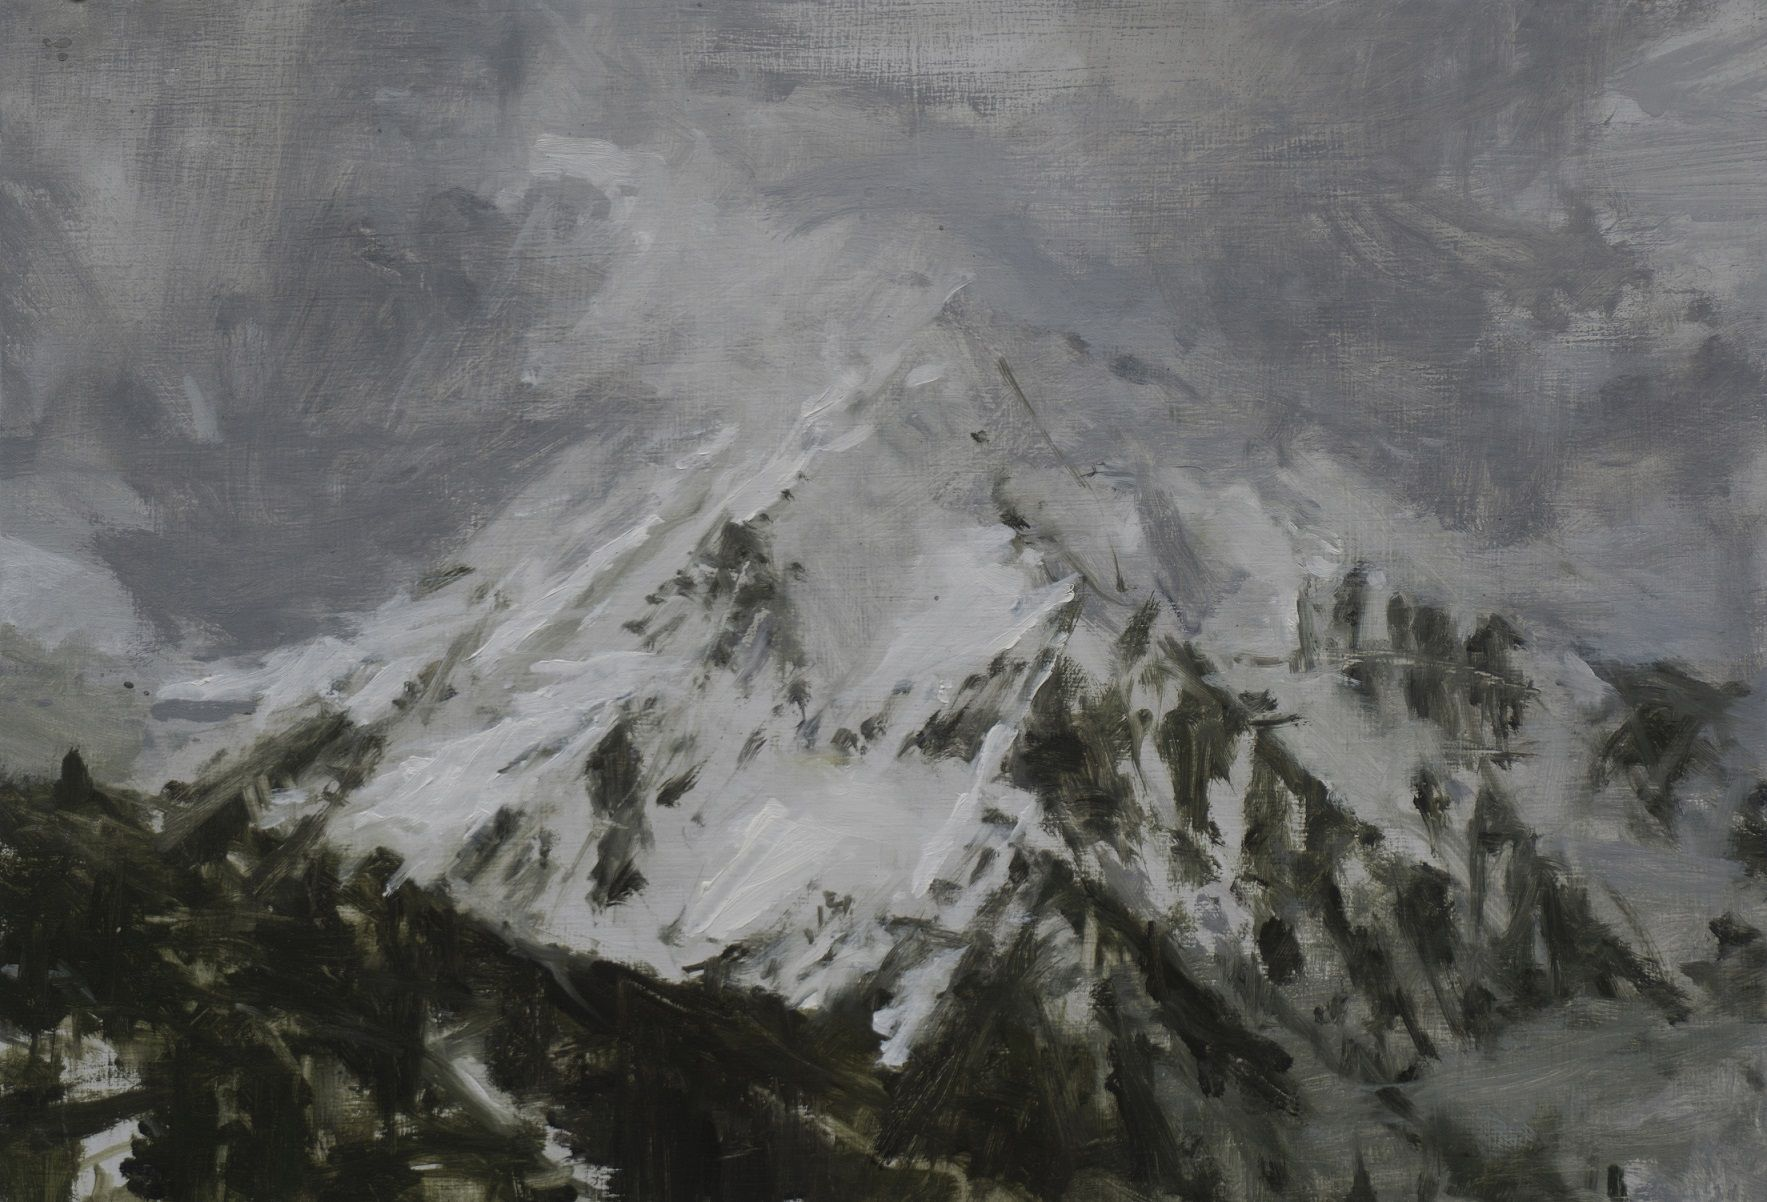 Benasque Study 3, Snow collection,Calo  Carratalá,Painting